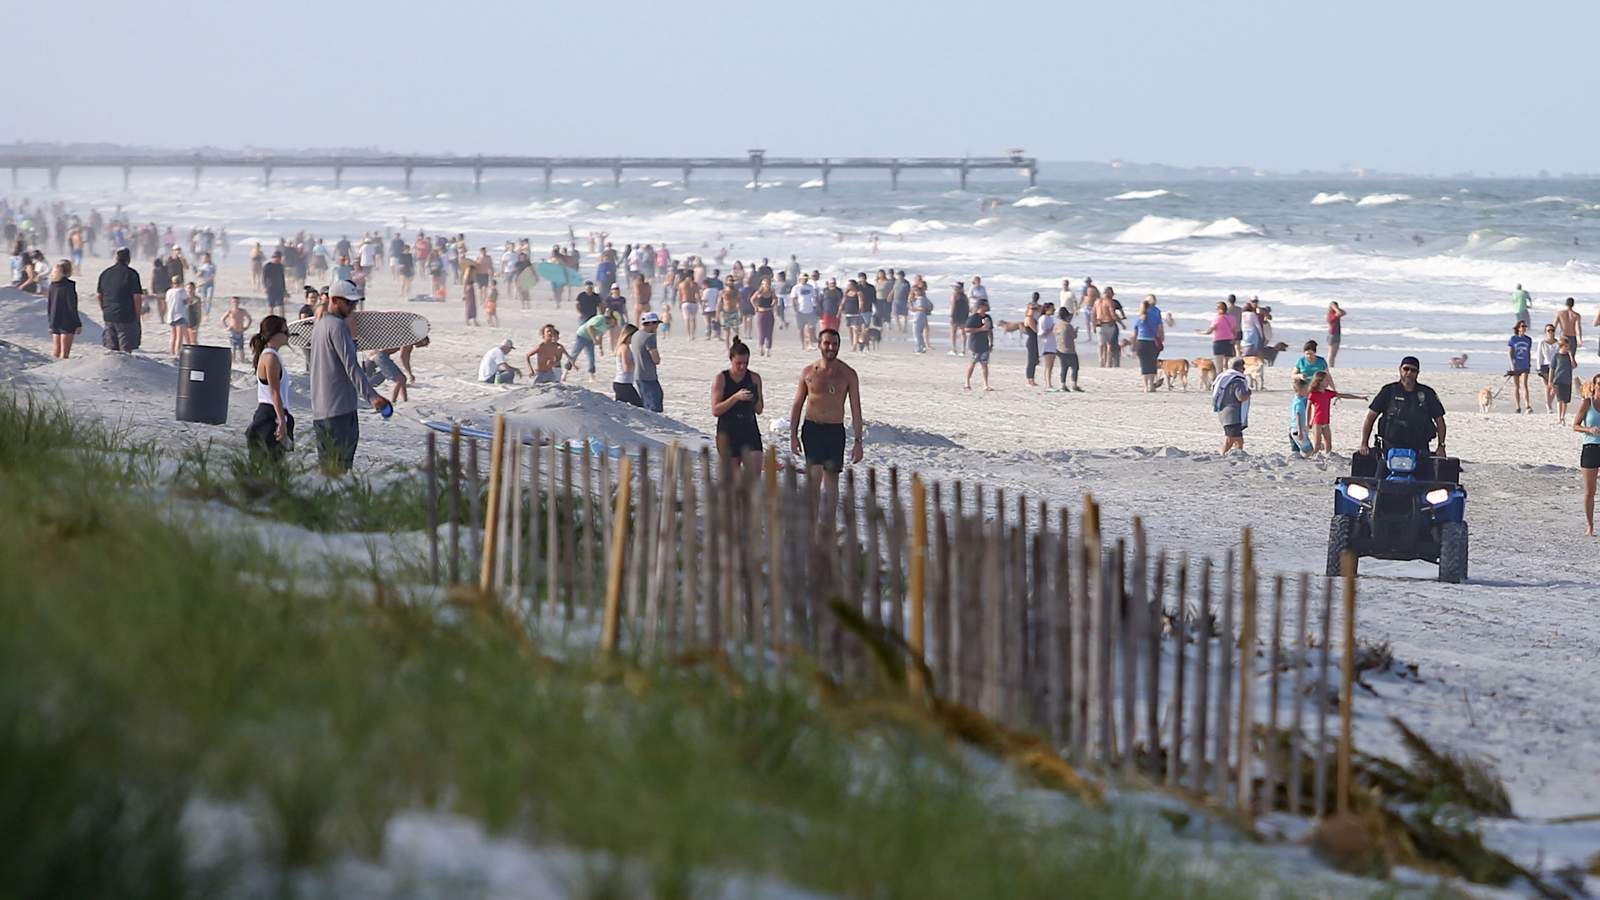 Restaurants Open On Christmas Day 2020 Jacksonville Fl Trust Index: Are Jacksonville area beaches crowded or empty?